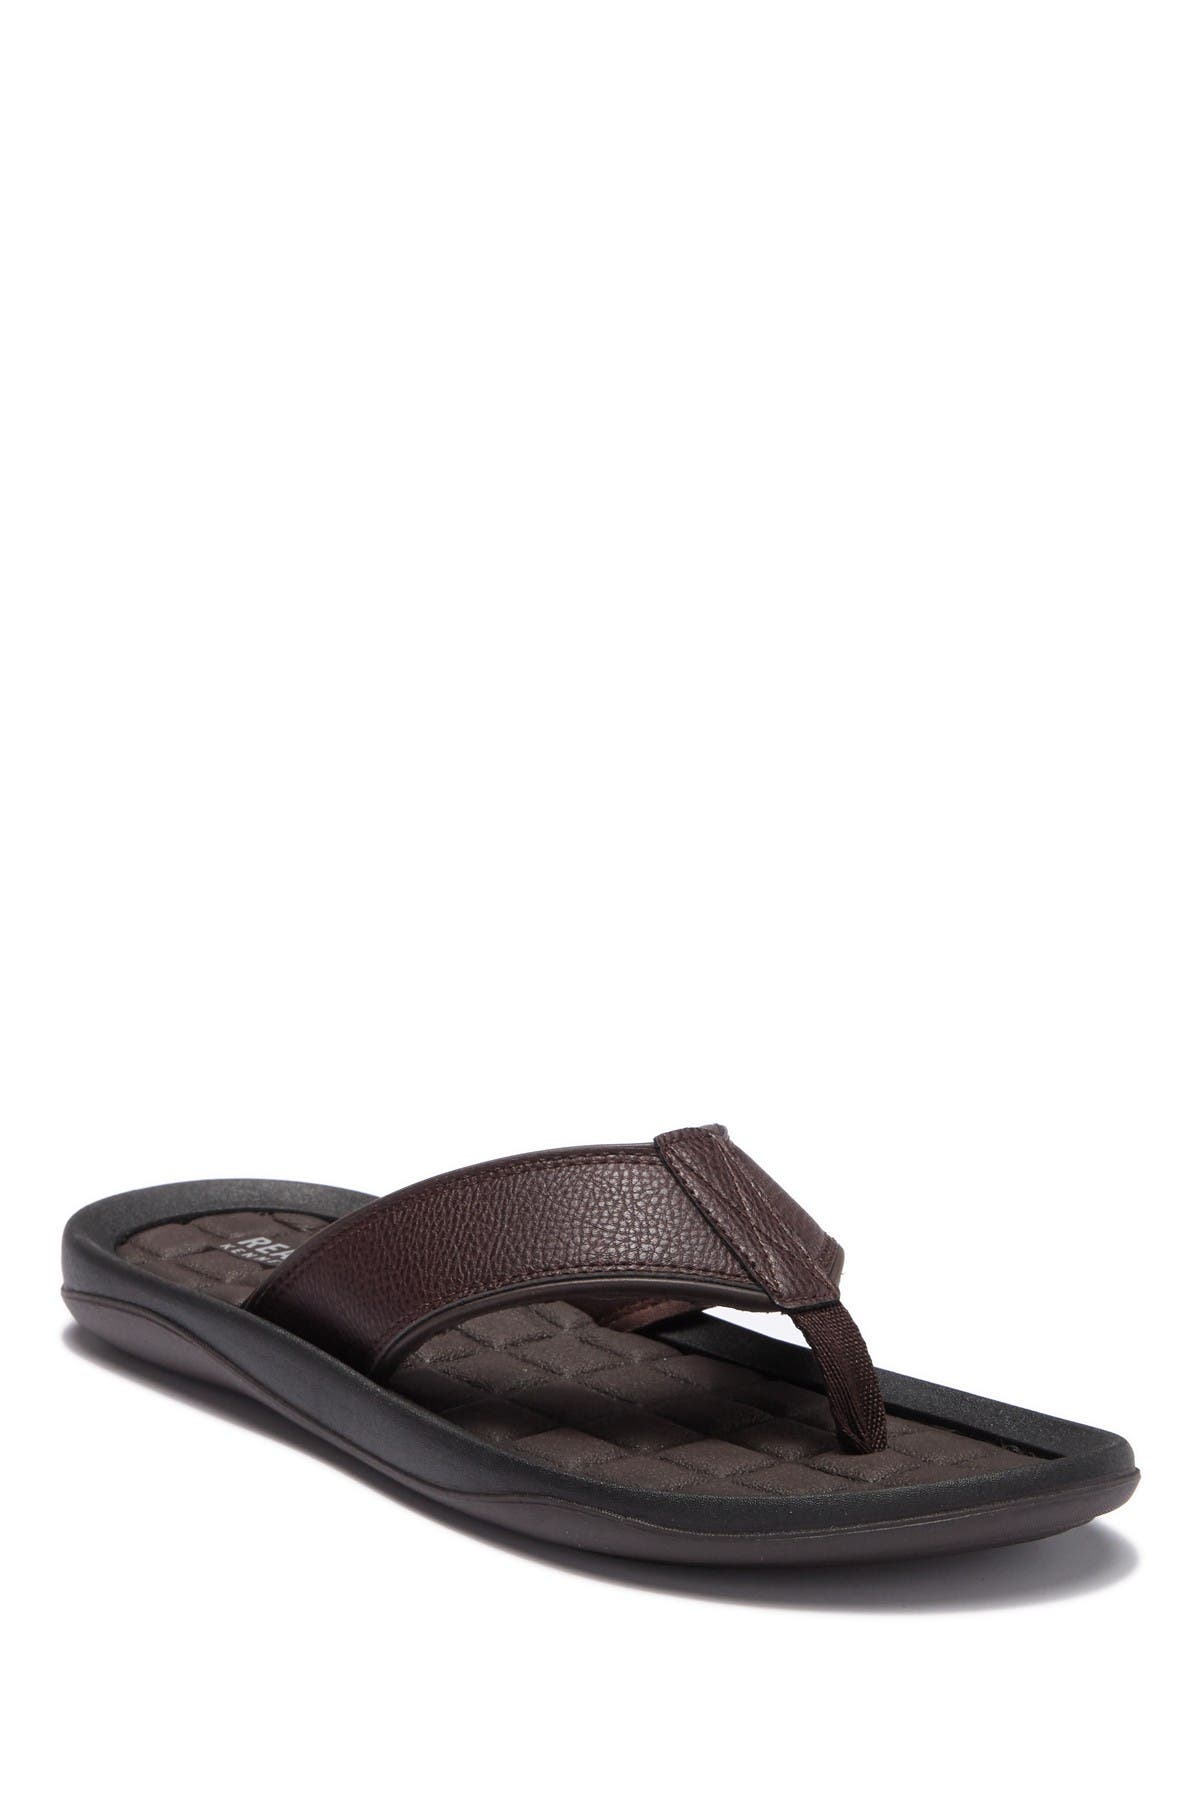 Kenneth Cole Reaction | Thong Flip Flop